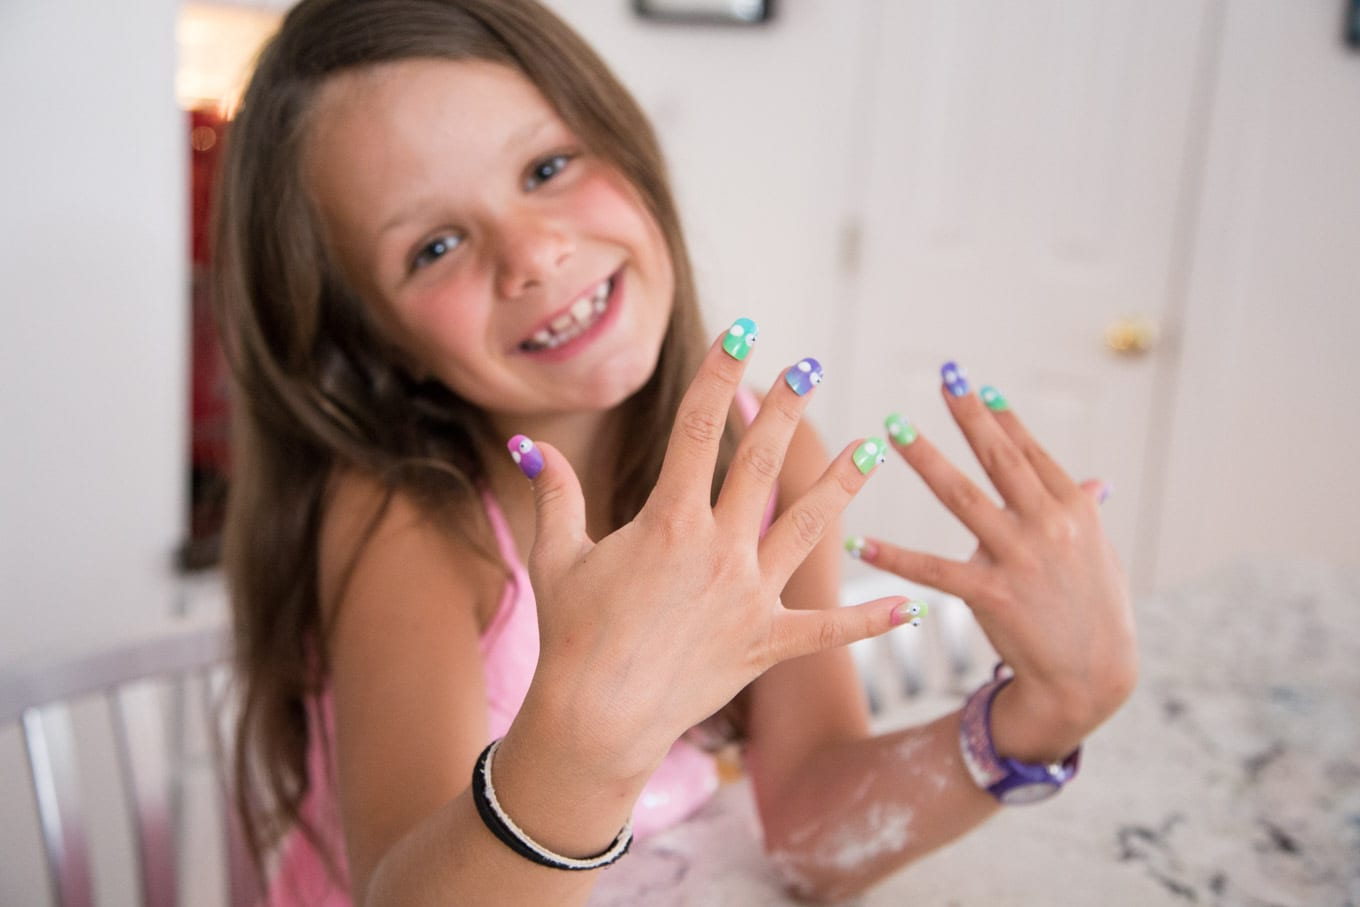 A shot of a young girl baker showing off her brightly colored finger nails with flour on her arm from making cookies.